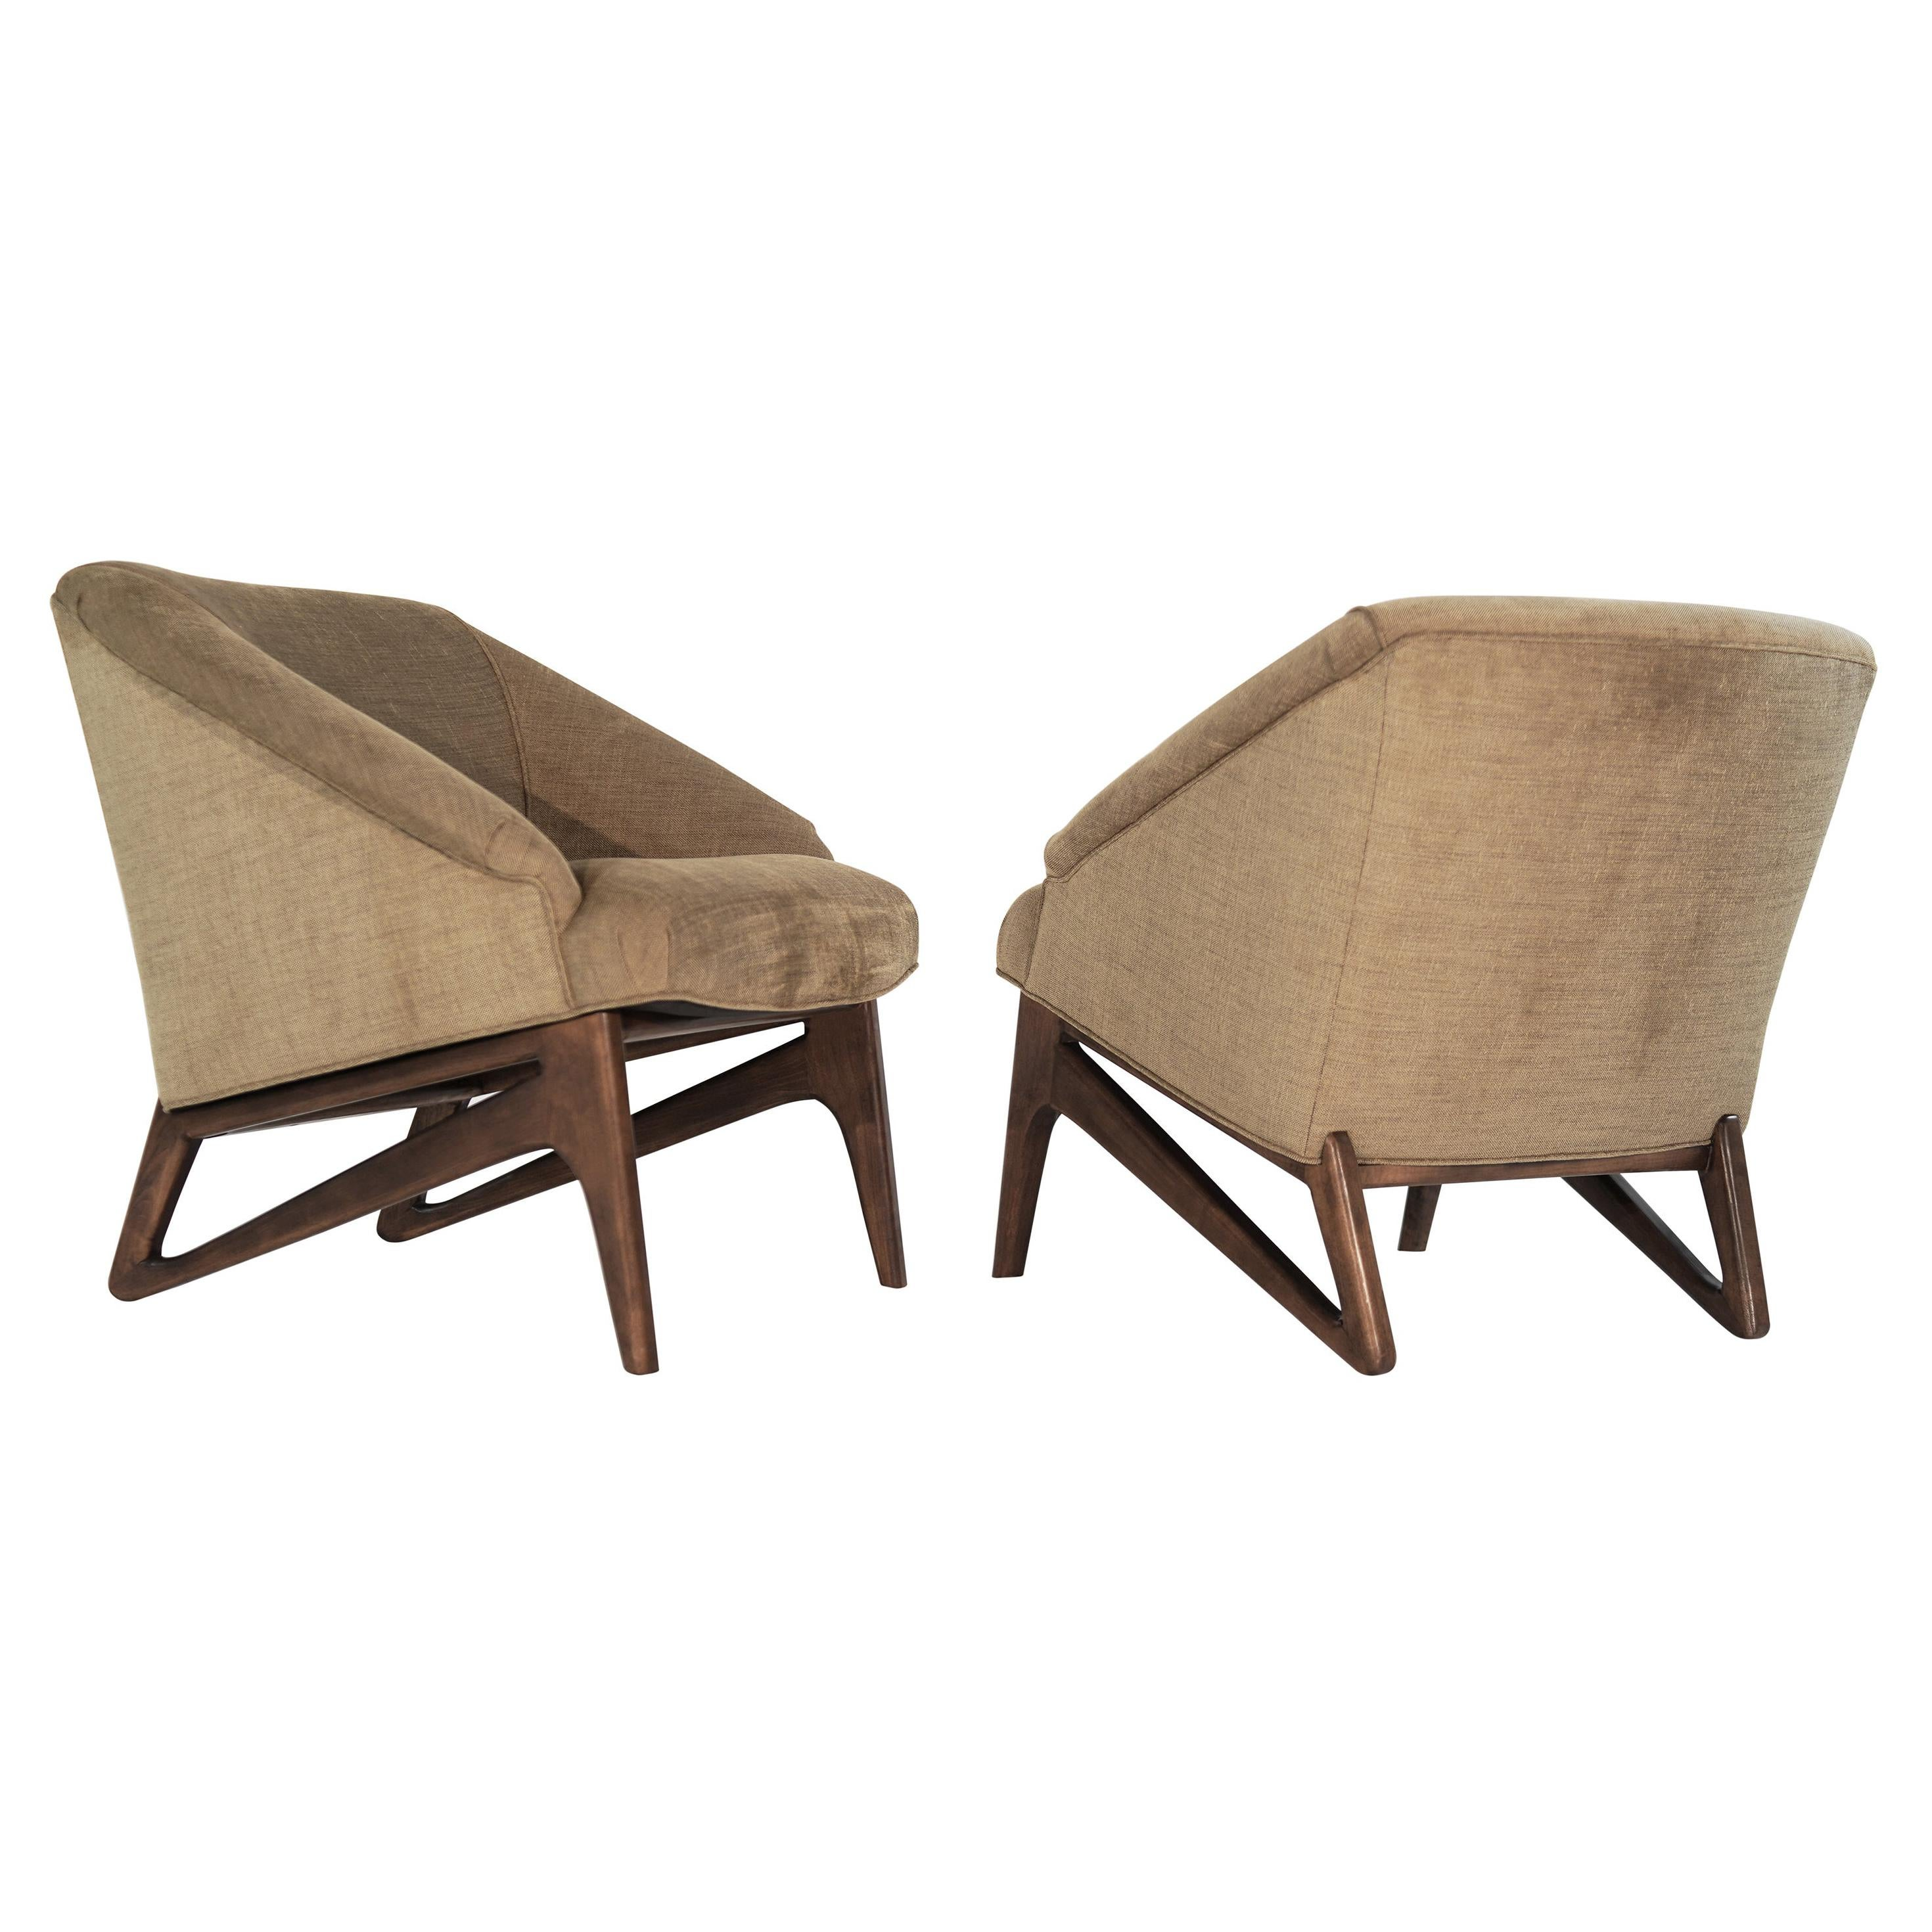 Modernist Sculptural Lounge Chairs, Italy, 1950s